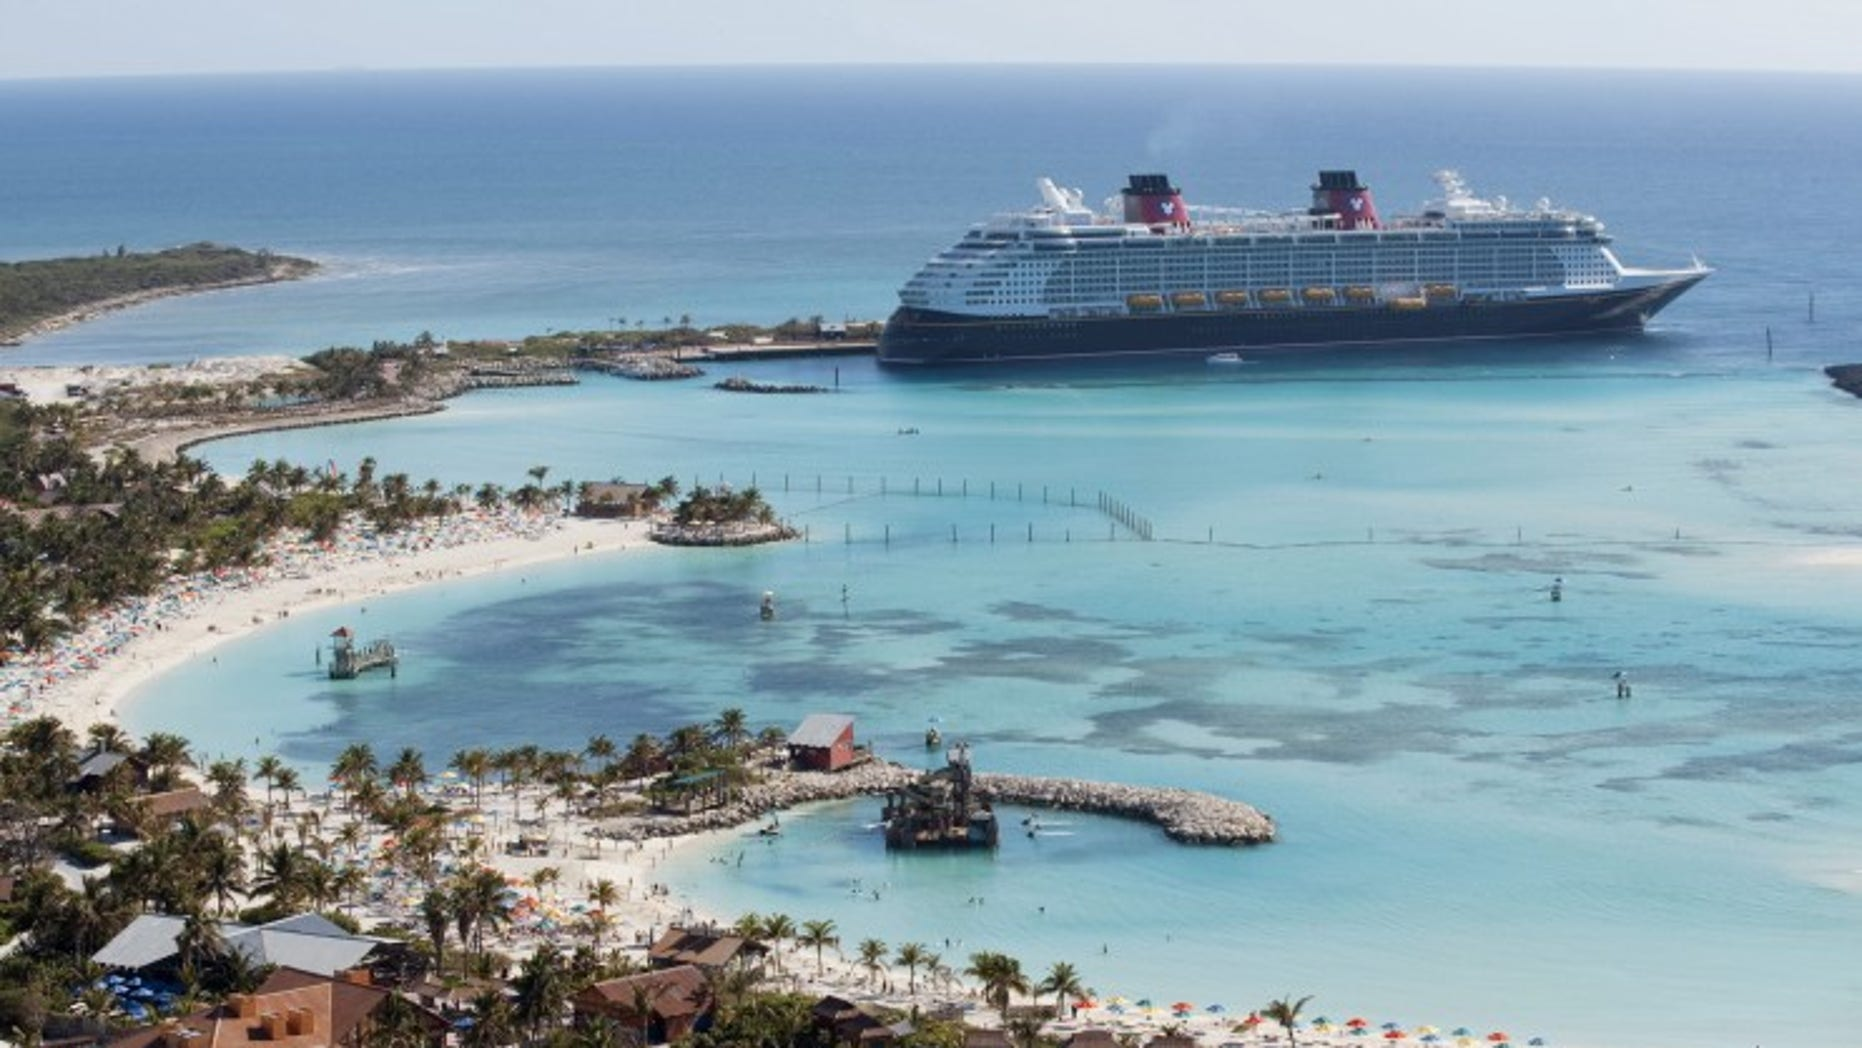 The Disney dream docks at Castaway Cay, Disney's private island in the Bahamas.